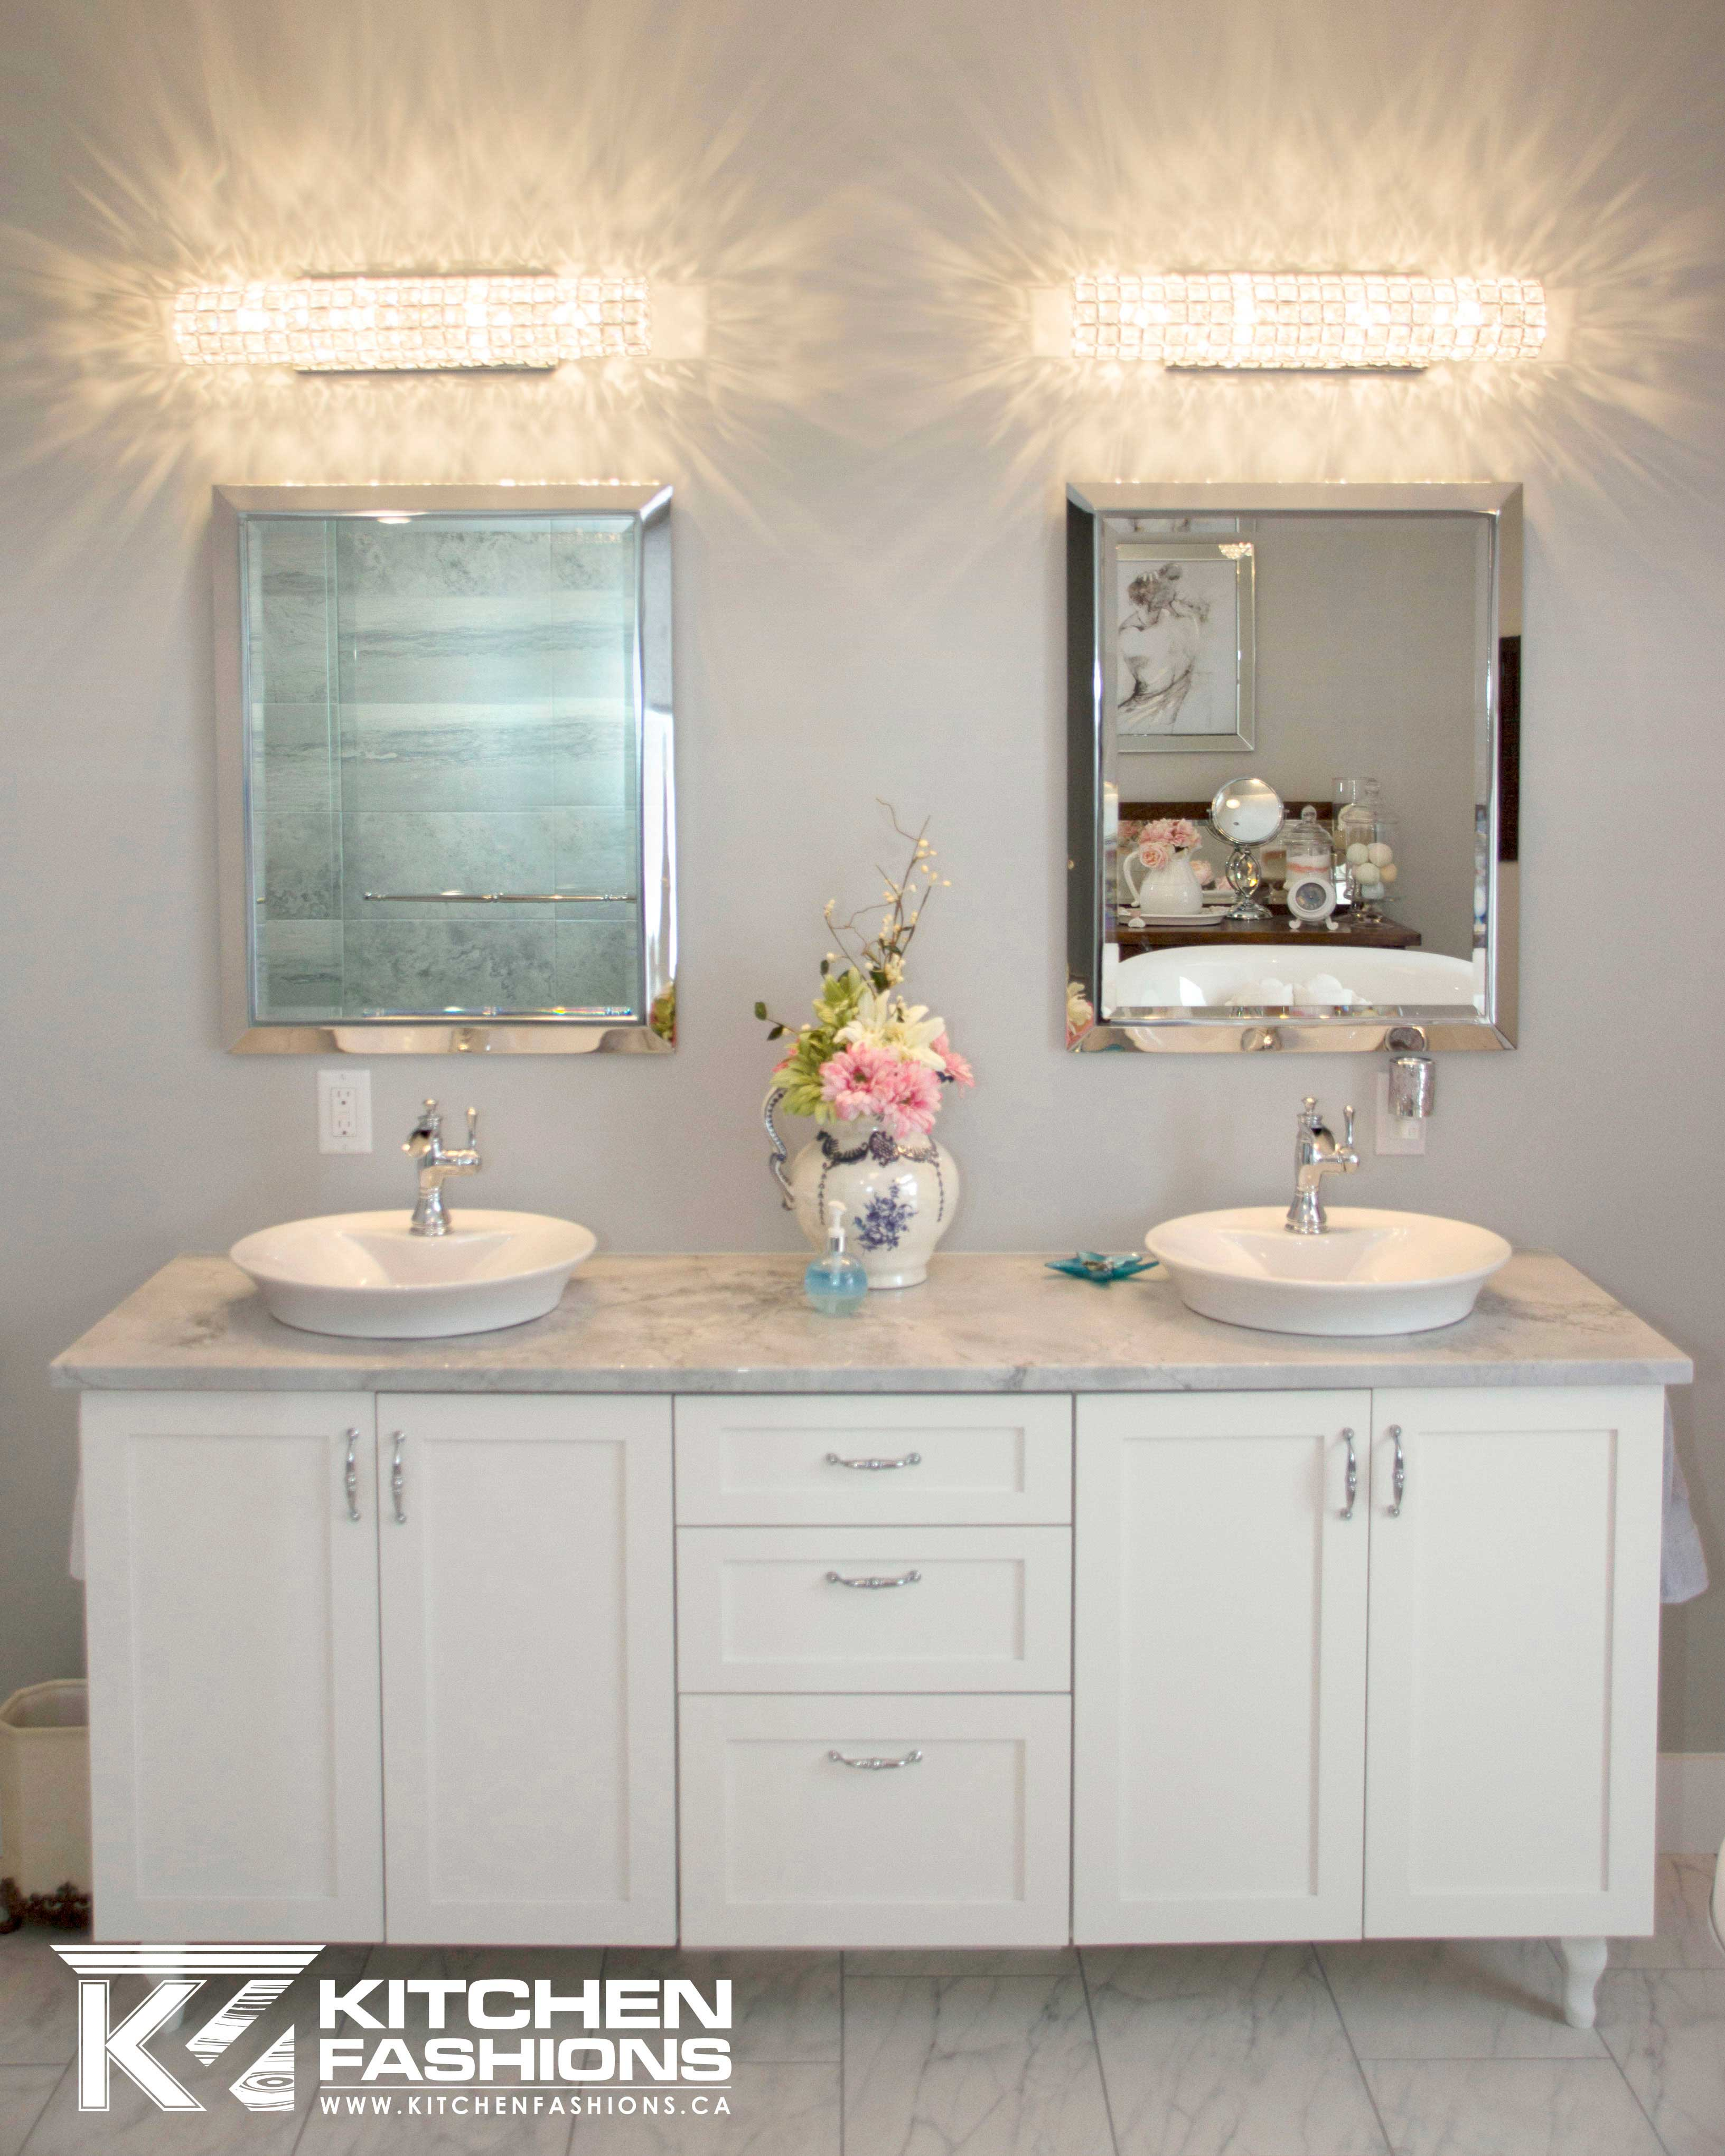 Home Fashions Bathrooms